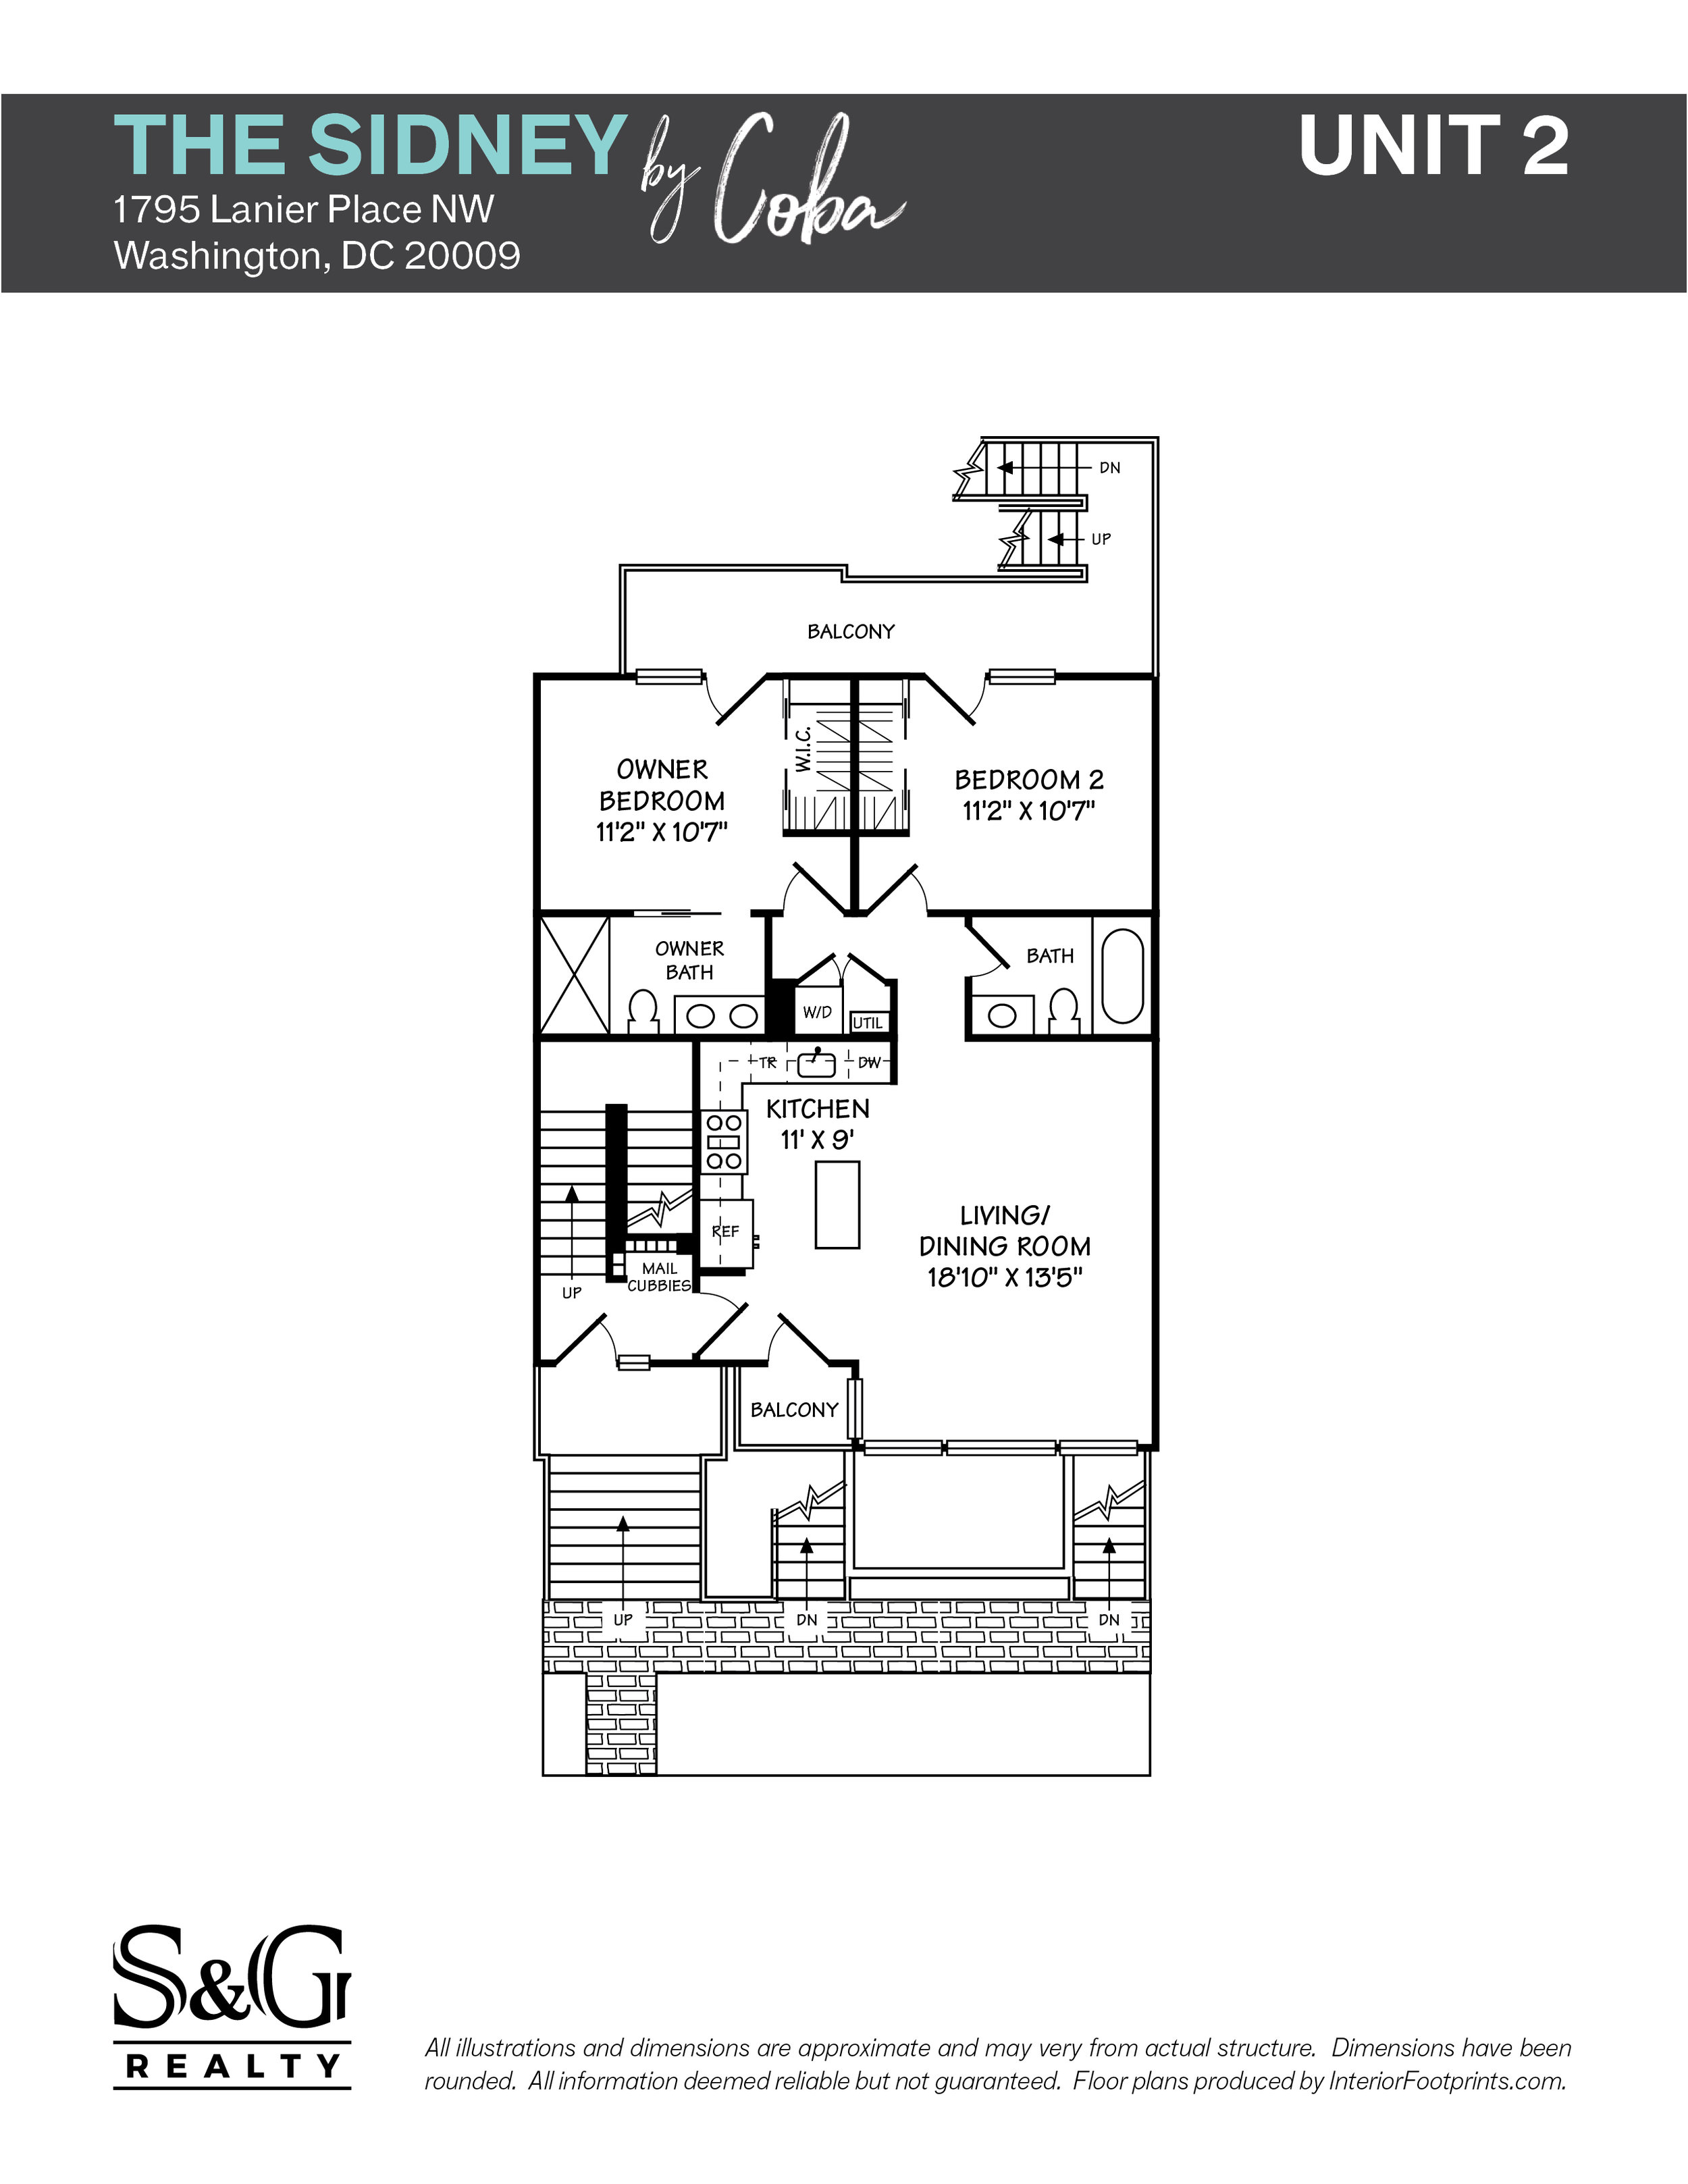 1795 Lanier Pl NW - Floor Plans - Unit 2.jpg